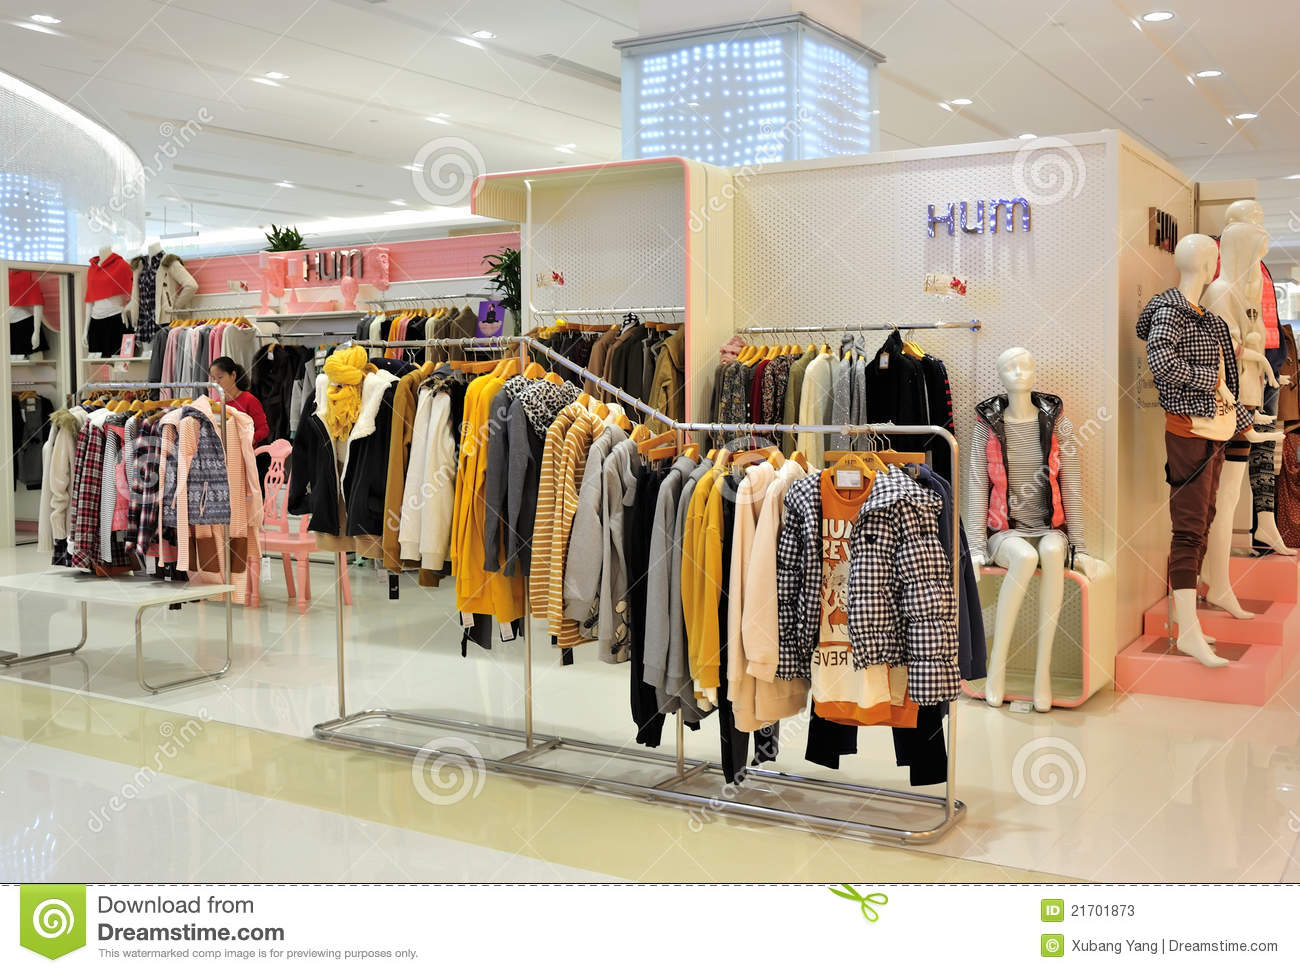 Girl's Fashion Clothing Store Editorial Stock Photo - Image: 21701873